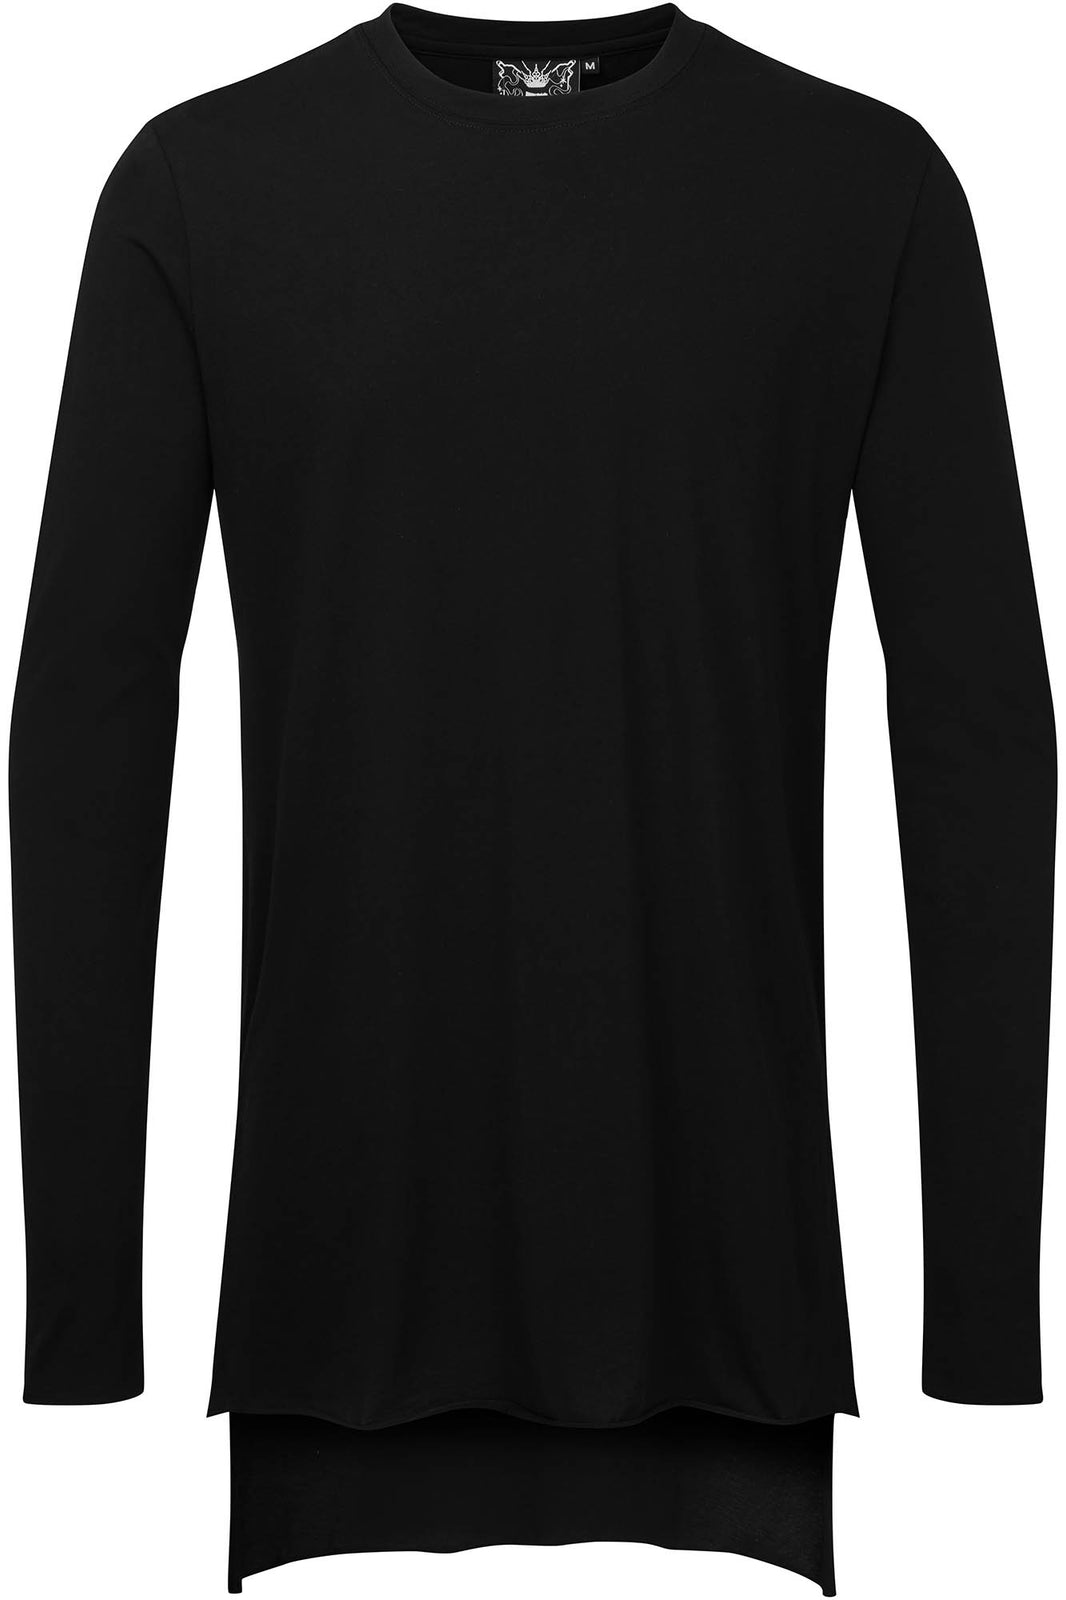 Malik Long Sleeve Top